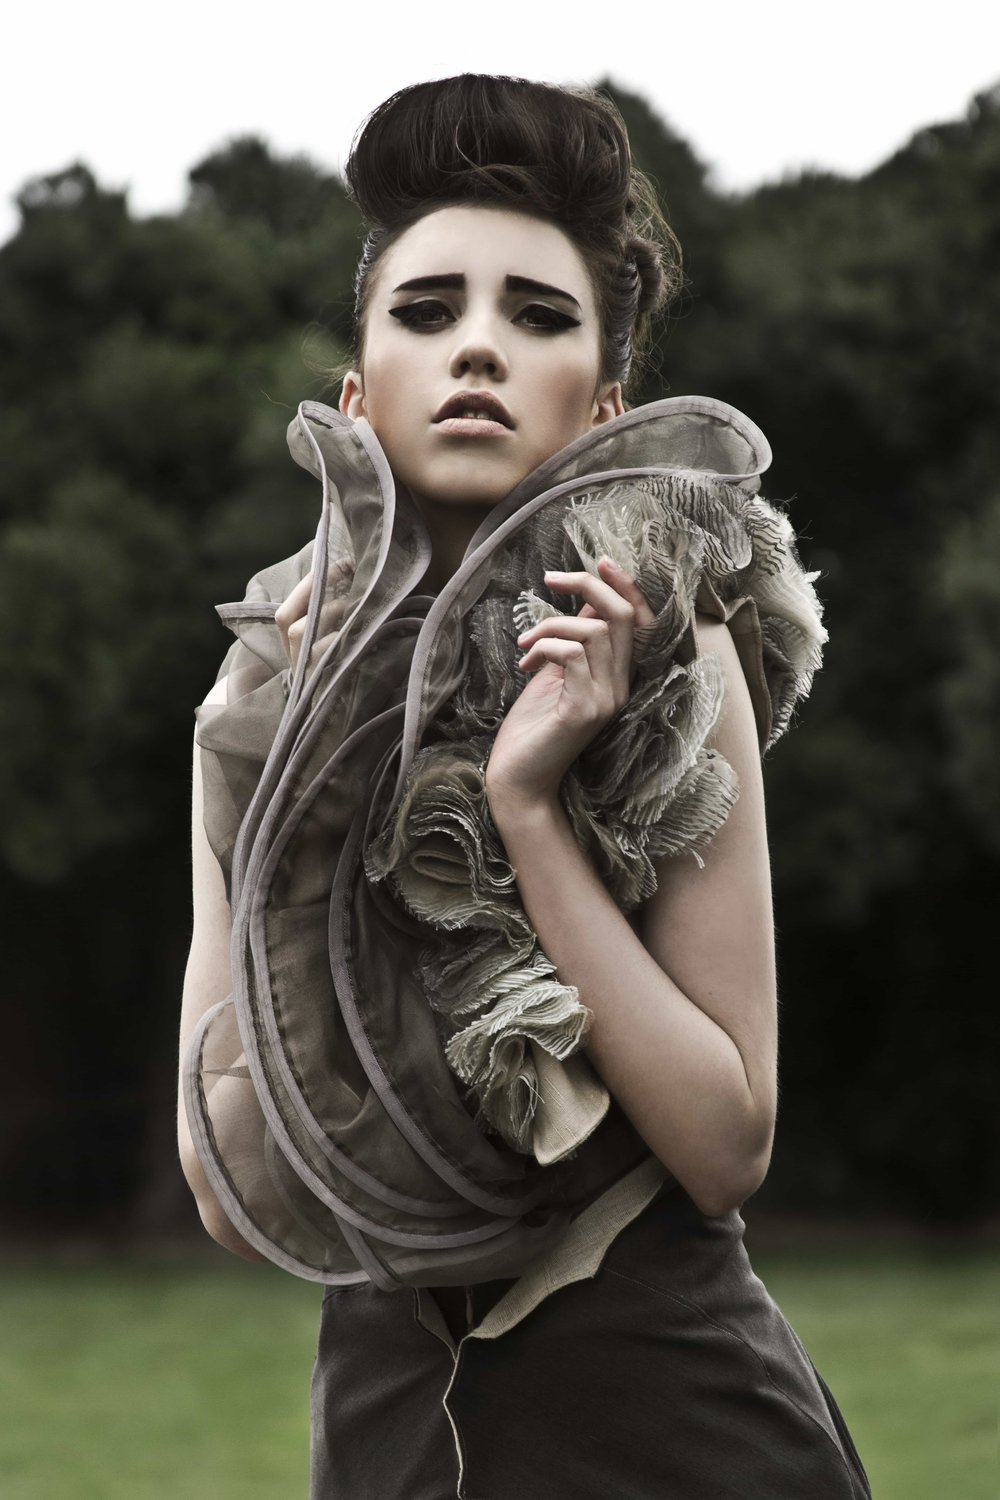 Photographer: Danielle Edwards. Model: Jasmine Waters.  Collection: ORGANIC ARCHITECTURE